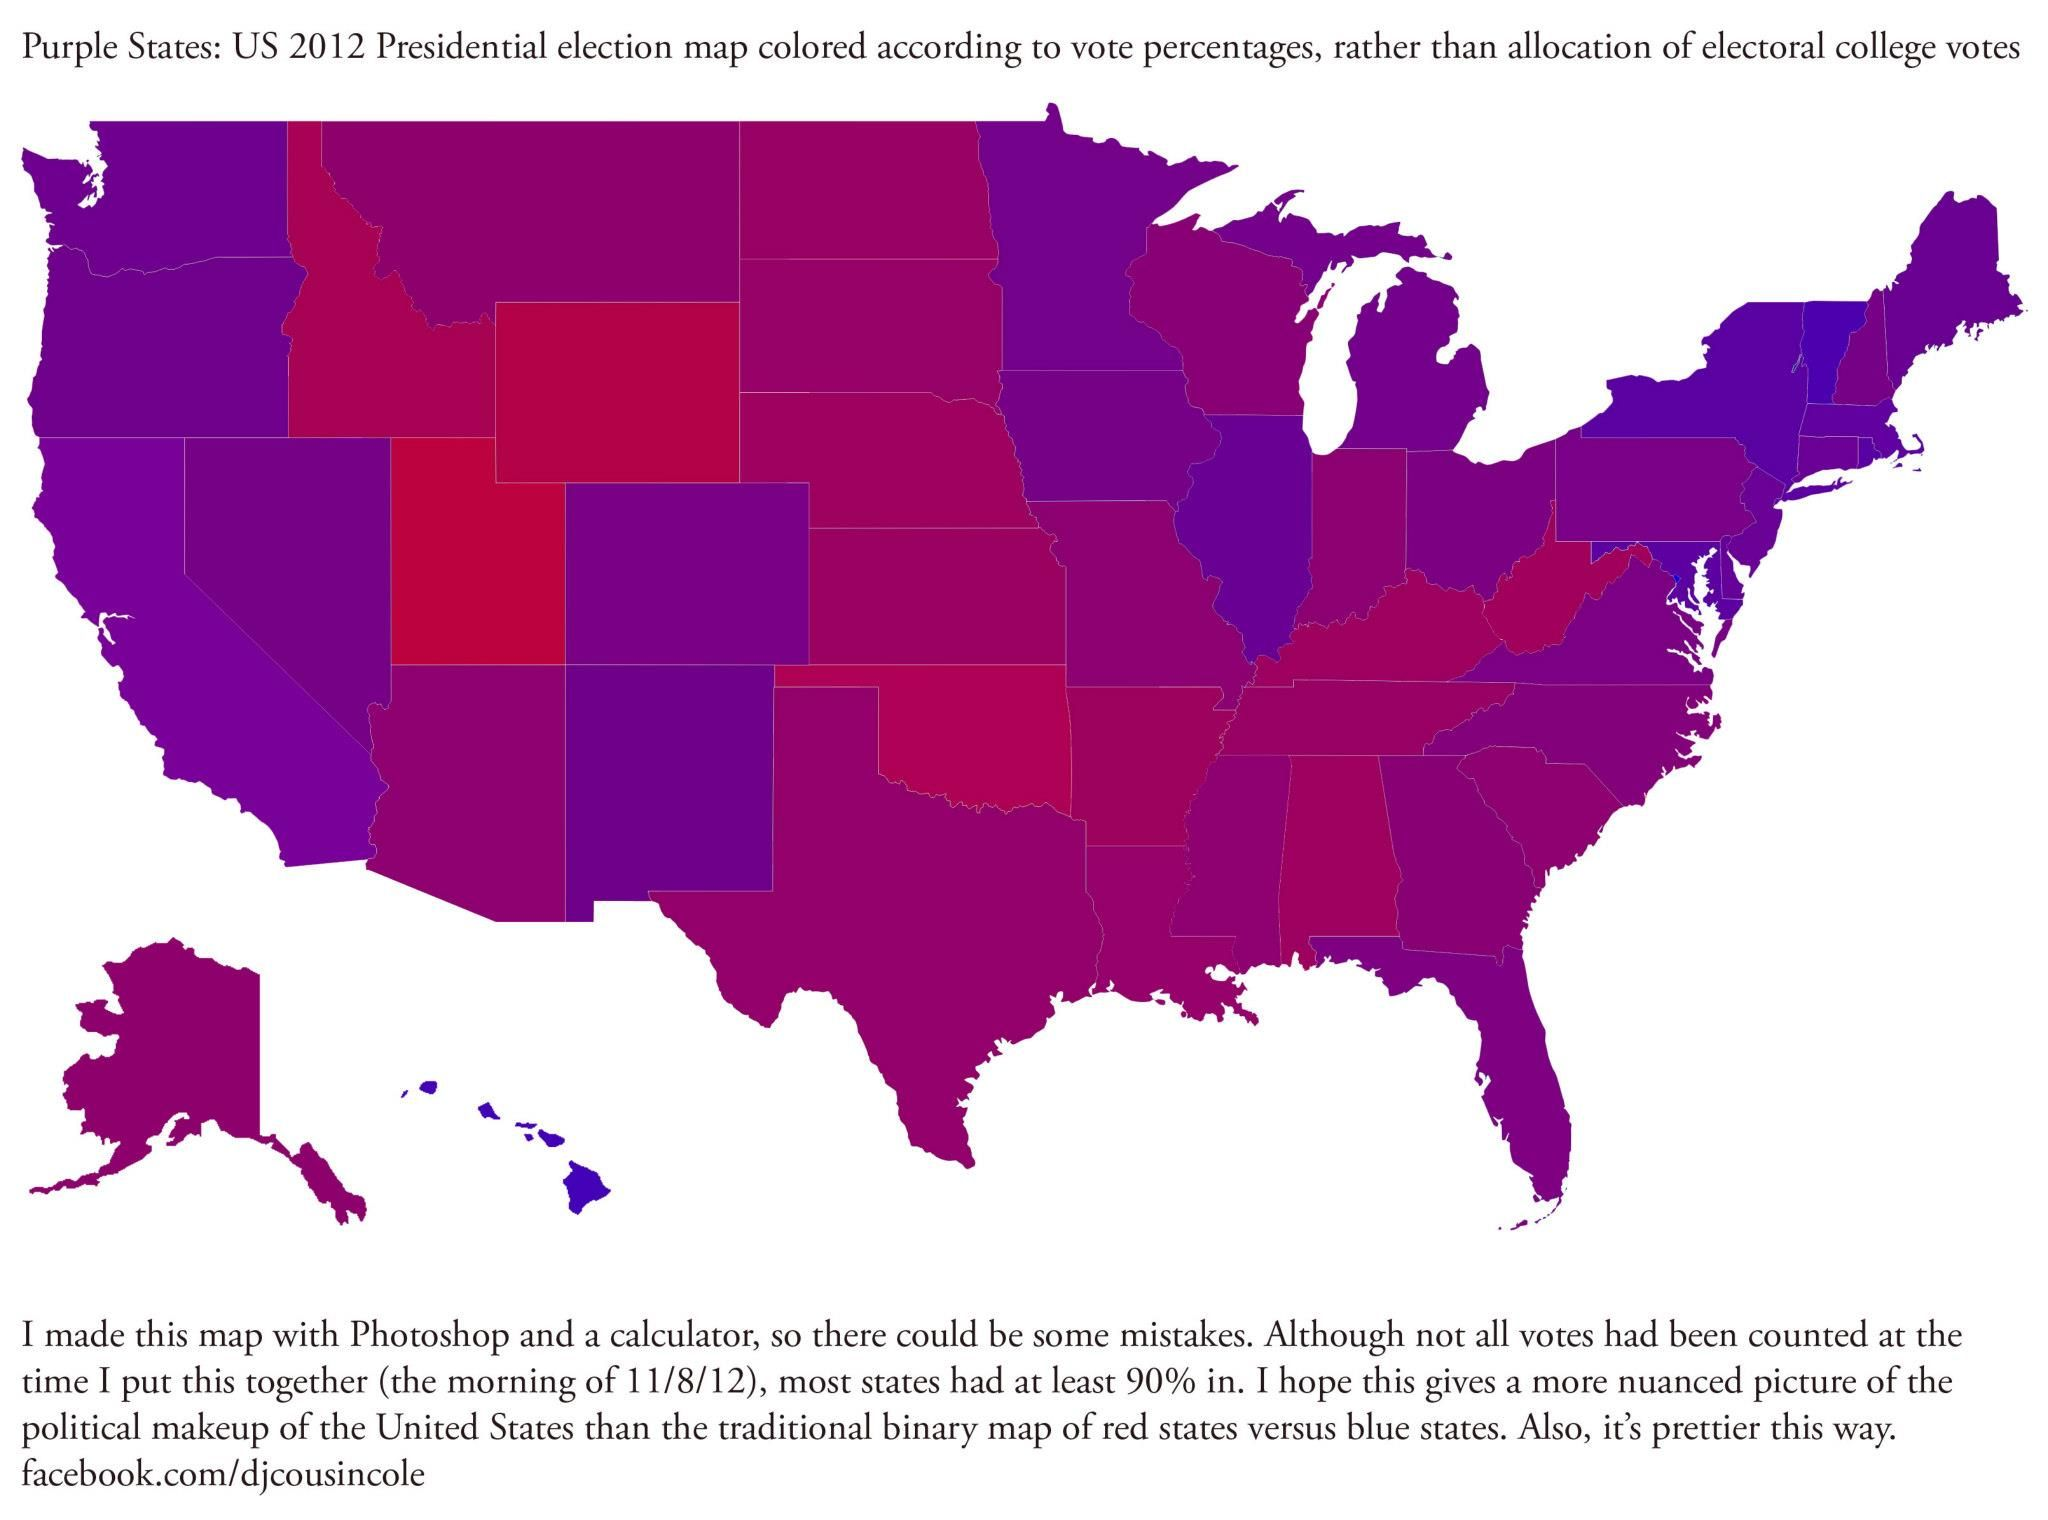 Purple States Not Red Or Blue By Percentages Of The Vote Not